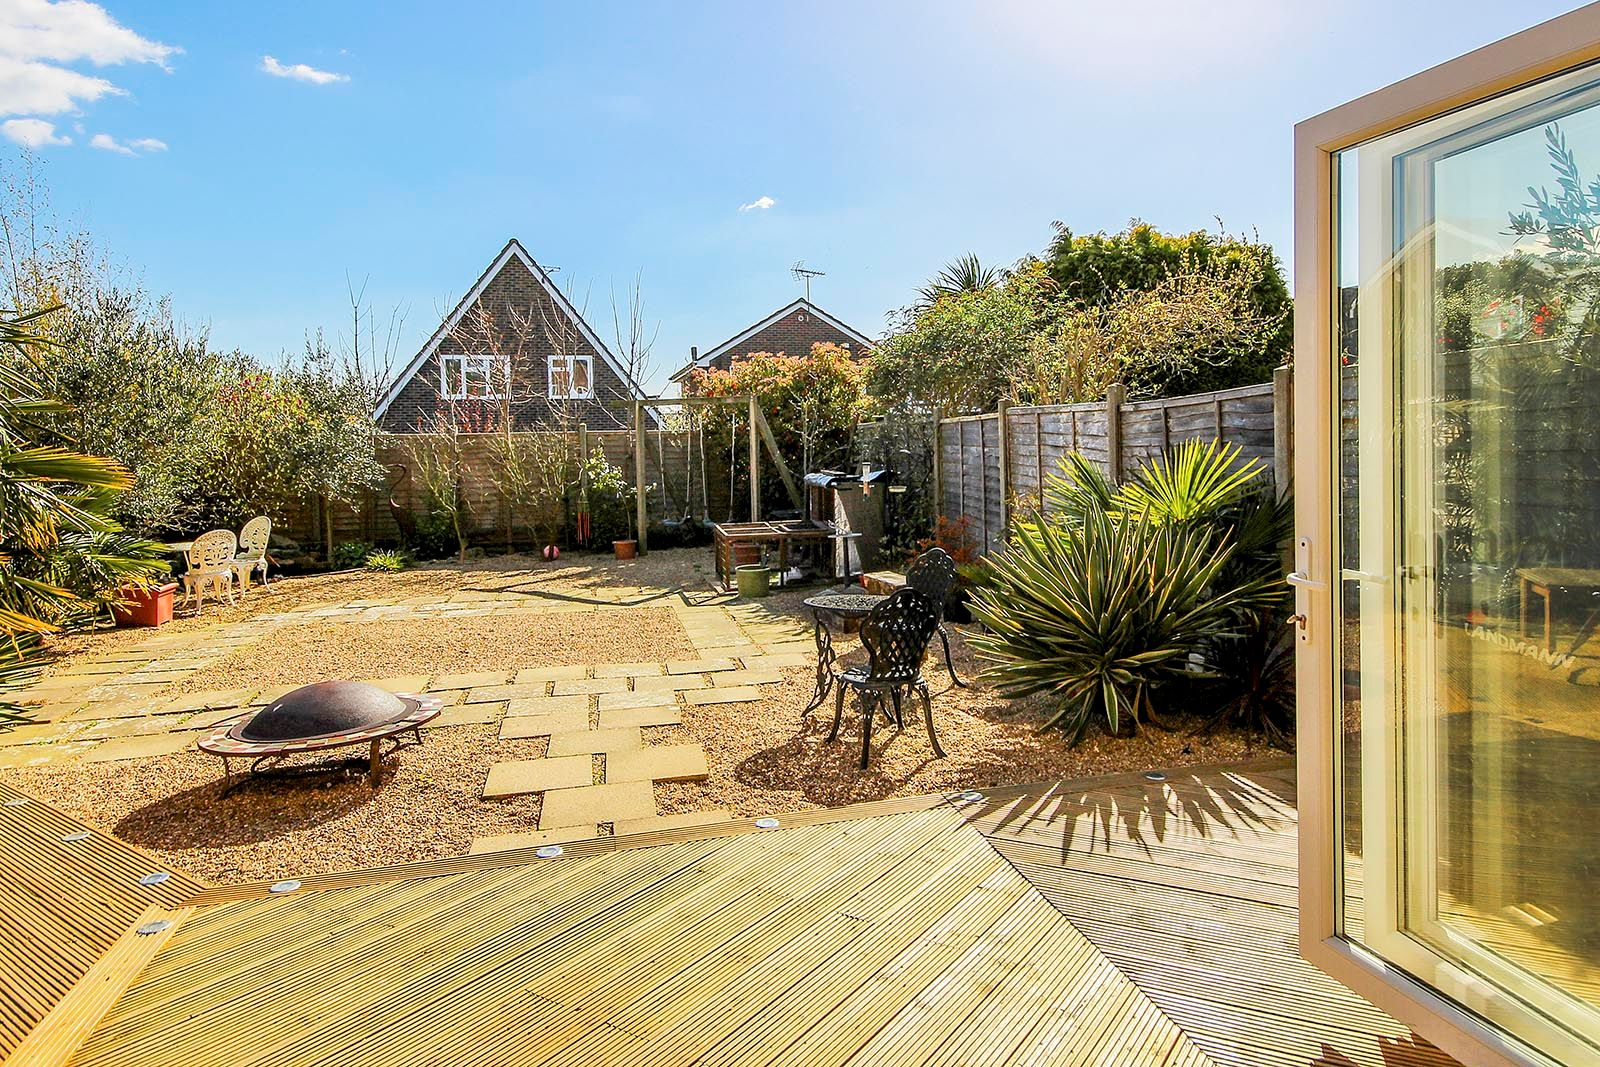 3 bed house for sale in Woodlands Close (COMP AUG 19) 18